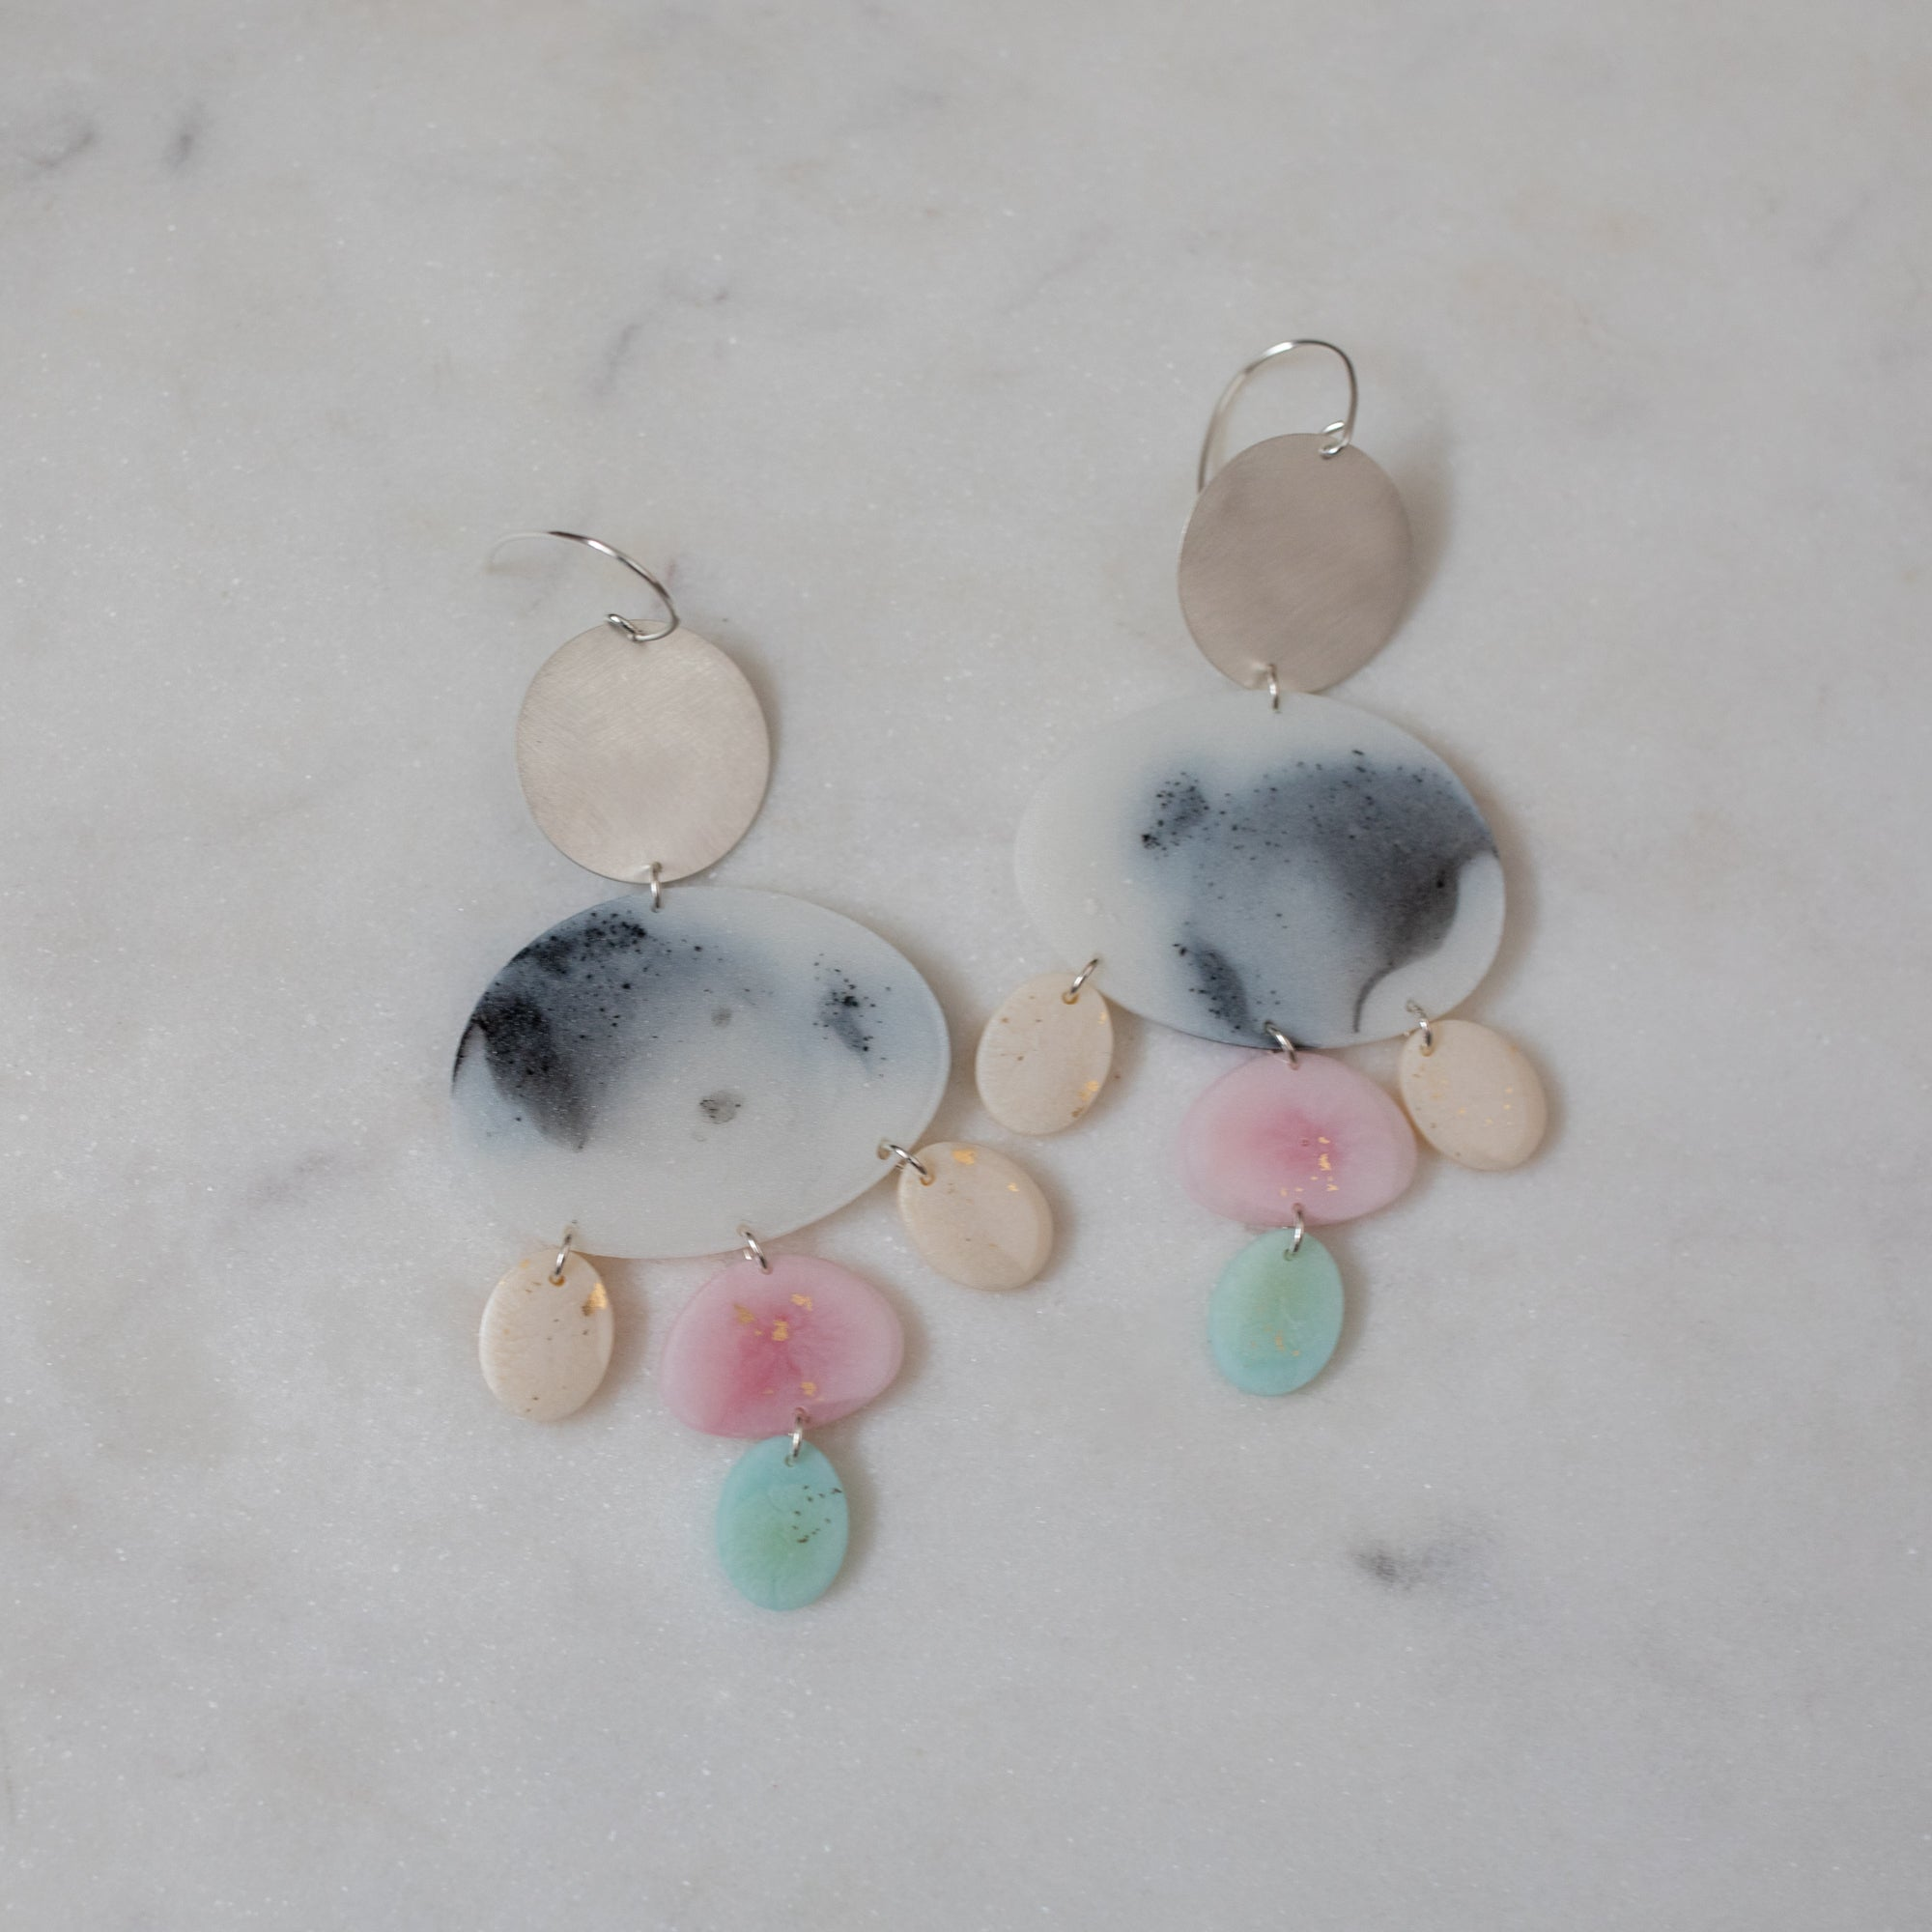 Silver Nightingale Monochrome Dangles in Candy Pastels